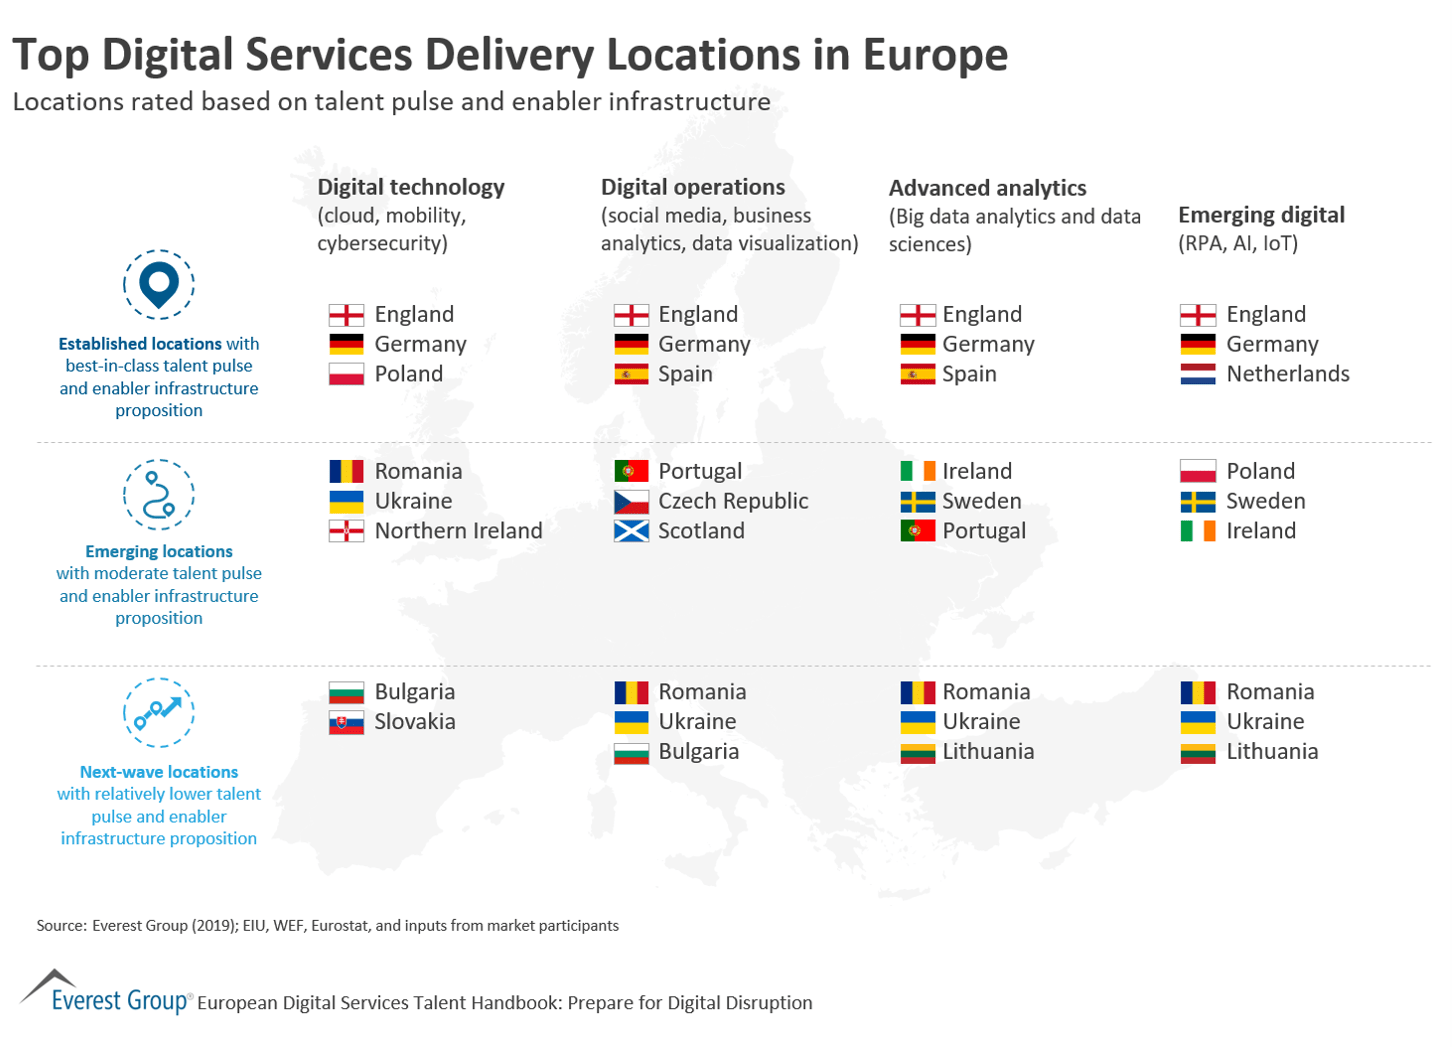 Digital Technology Service Delivery in Europe